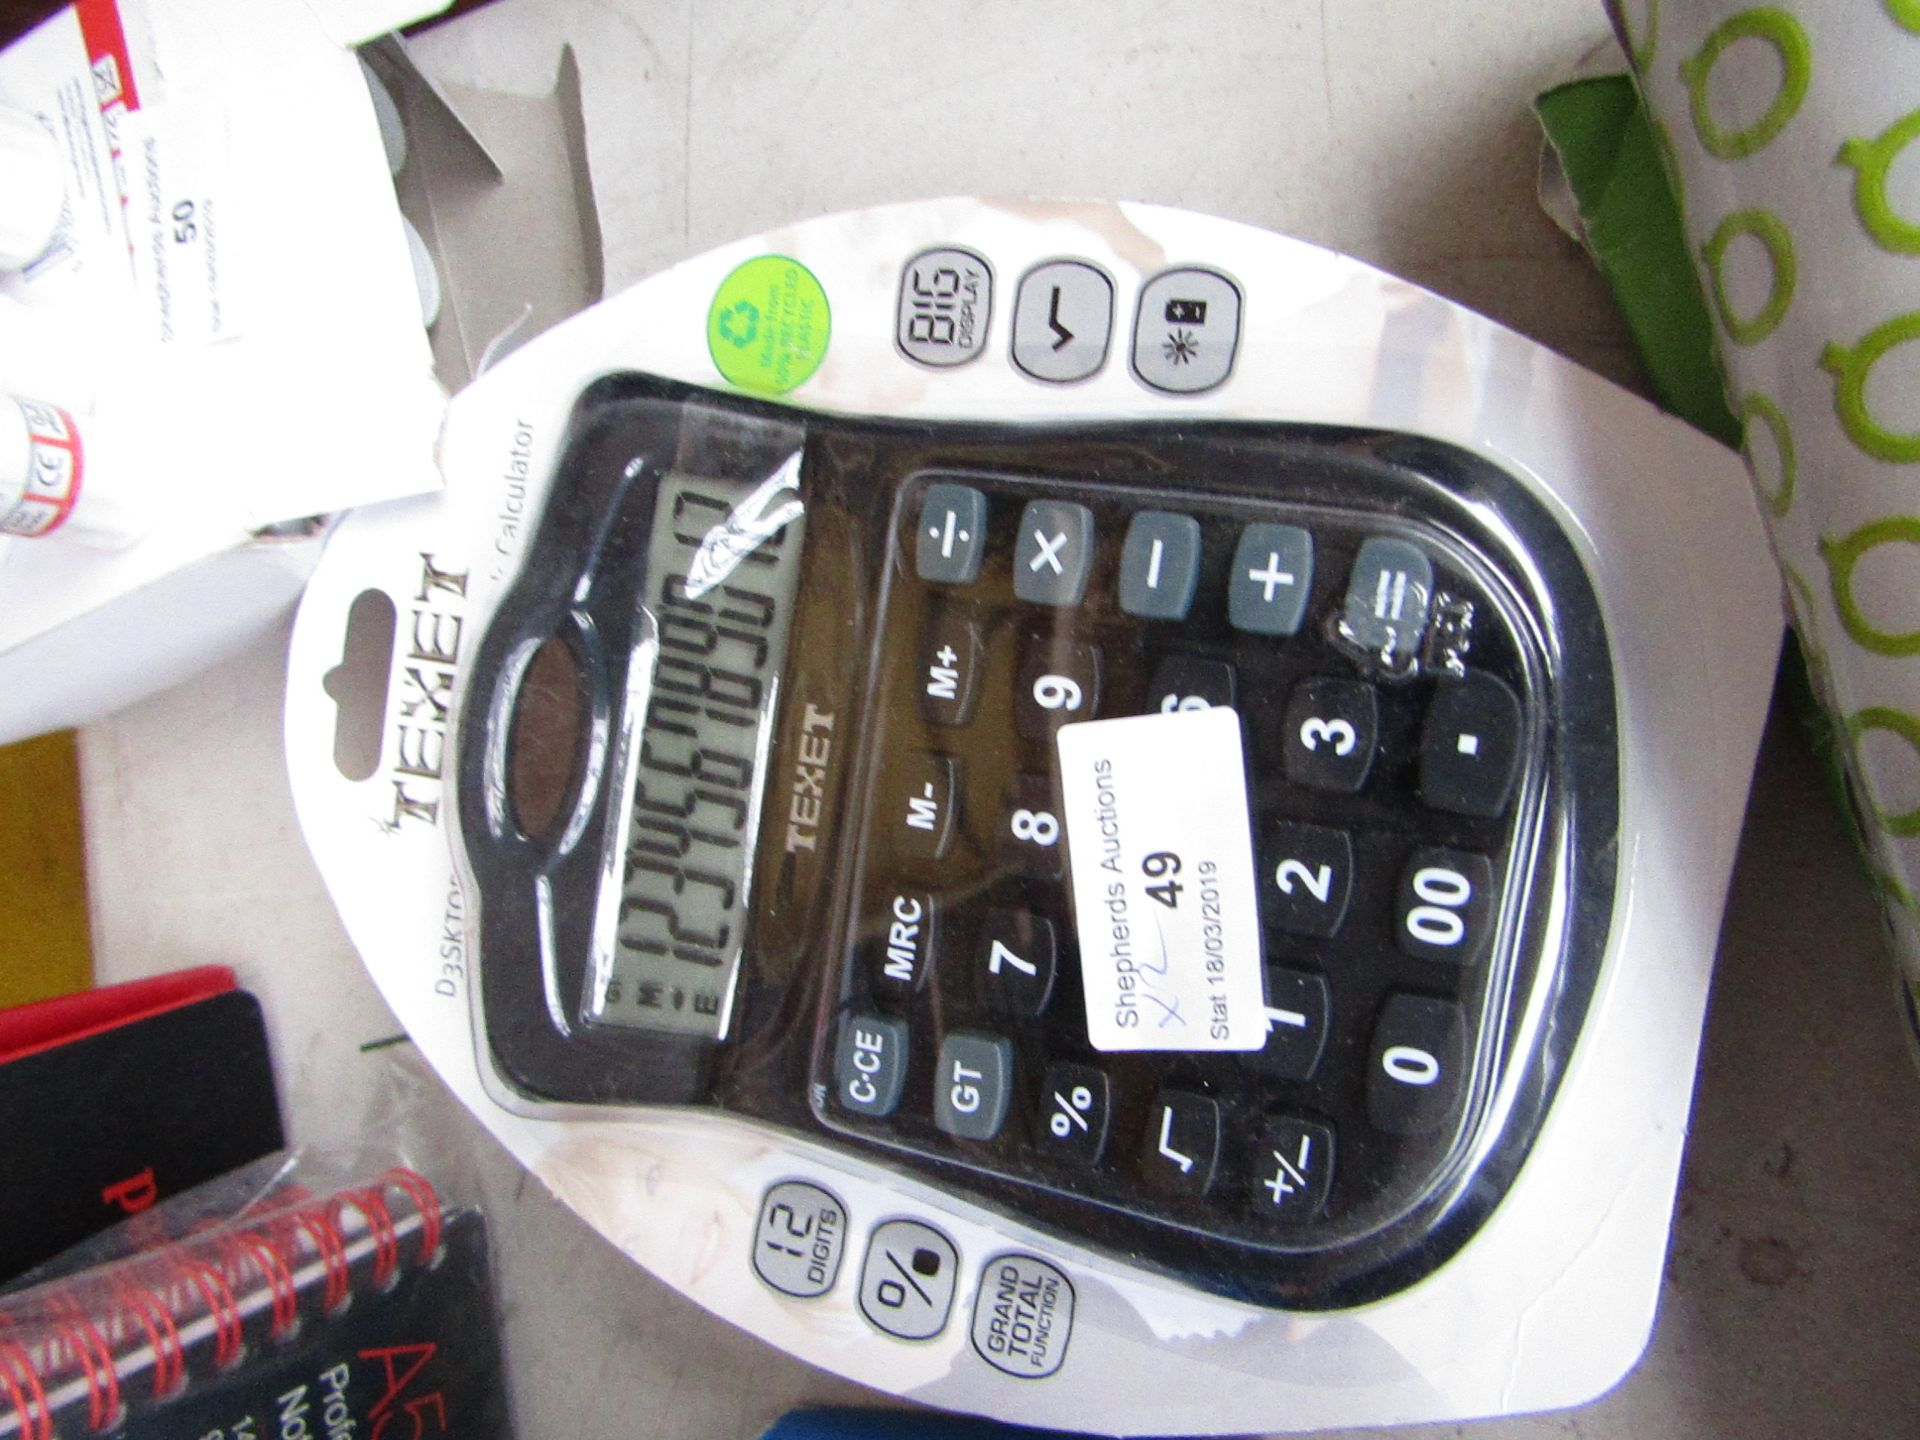 Lot 49 - 2x Texet Dual Powered Calculator, still in packaging